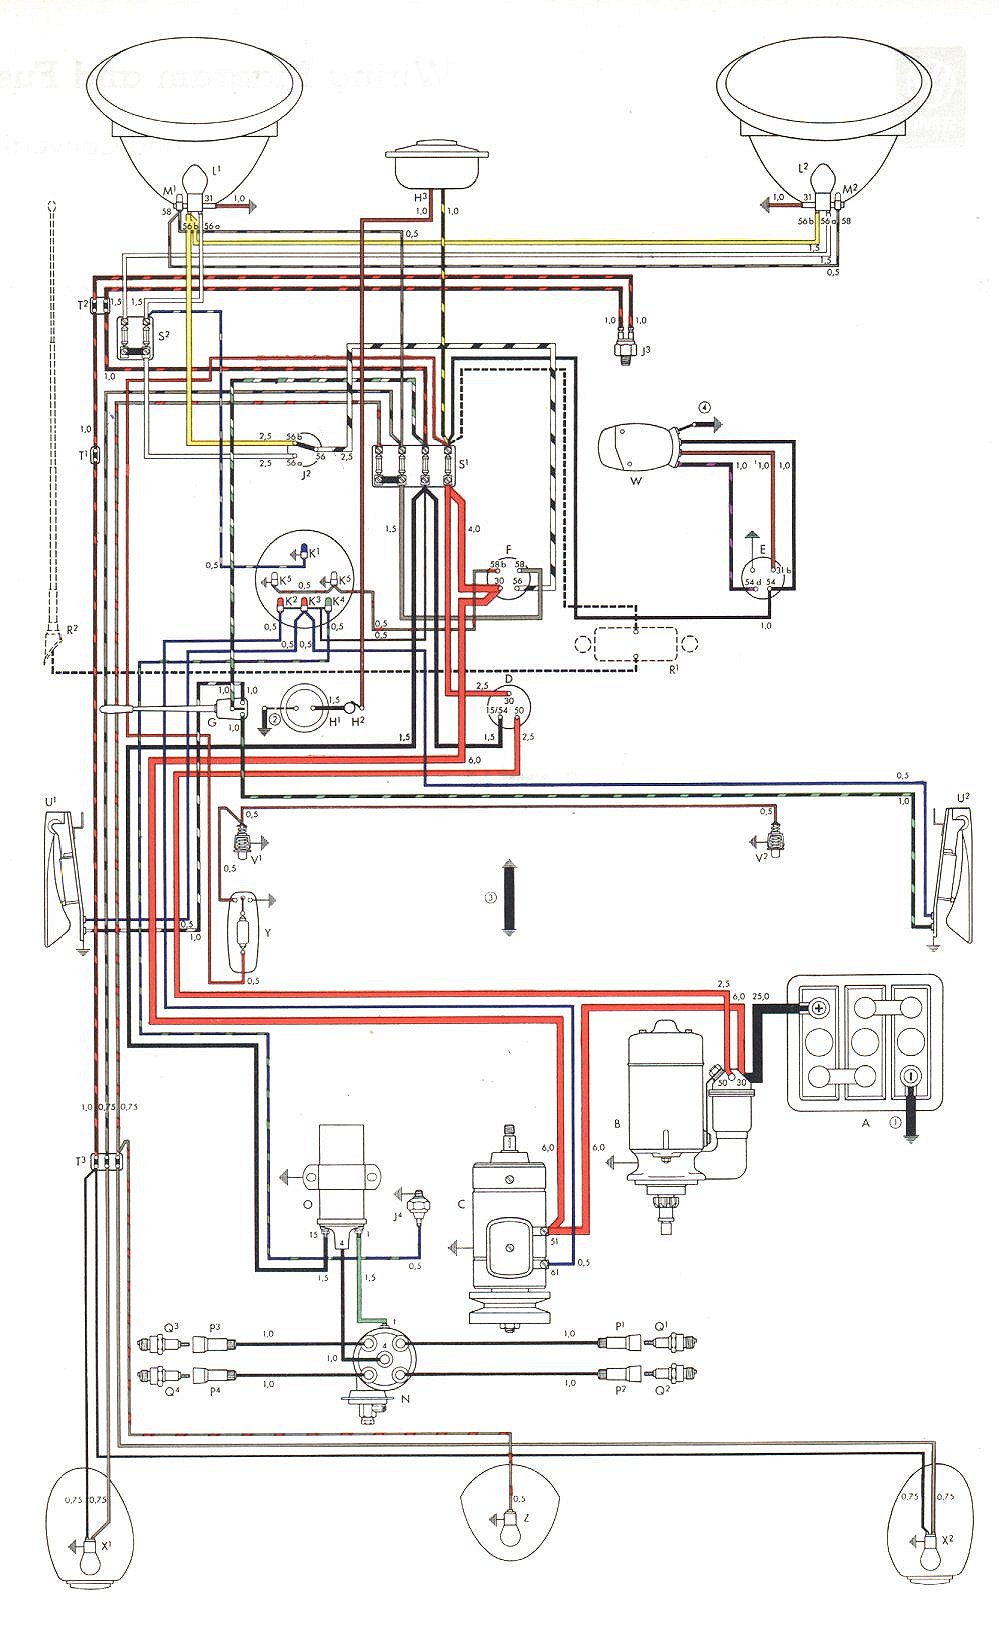 75 Vw Ignition Switch Wiring Diagram vw bug turn signal ... Vw Type Wiring Diagram on jaguar s type wiring diagram, vw type 1 maintenance, vw type 1 suspension, vw type 1 fuel pump, vw type 1 fuel gauge, vw type 1 exhaust, vw type 1 air conditioning, vw type 1 generator, vw type 1 fan belt, vw type 1 dimensions, vw type 1 body, vw type 1 flywheel, vw type 1 starter, vw type 1 brakes, vw type 1 wheels, vw type 1 frame, volkswagen type 3 wiring diagram, vw type 1 torque specs,